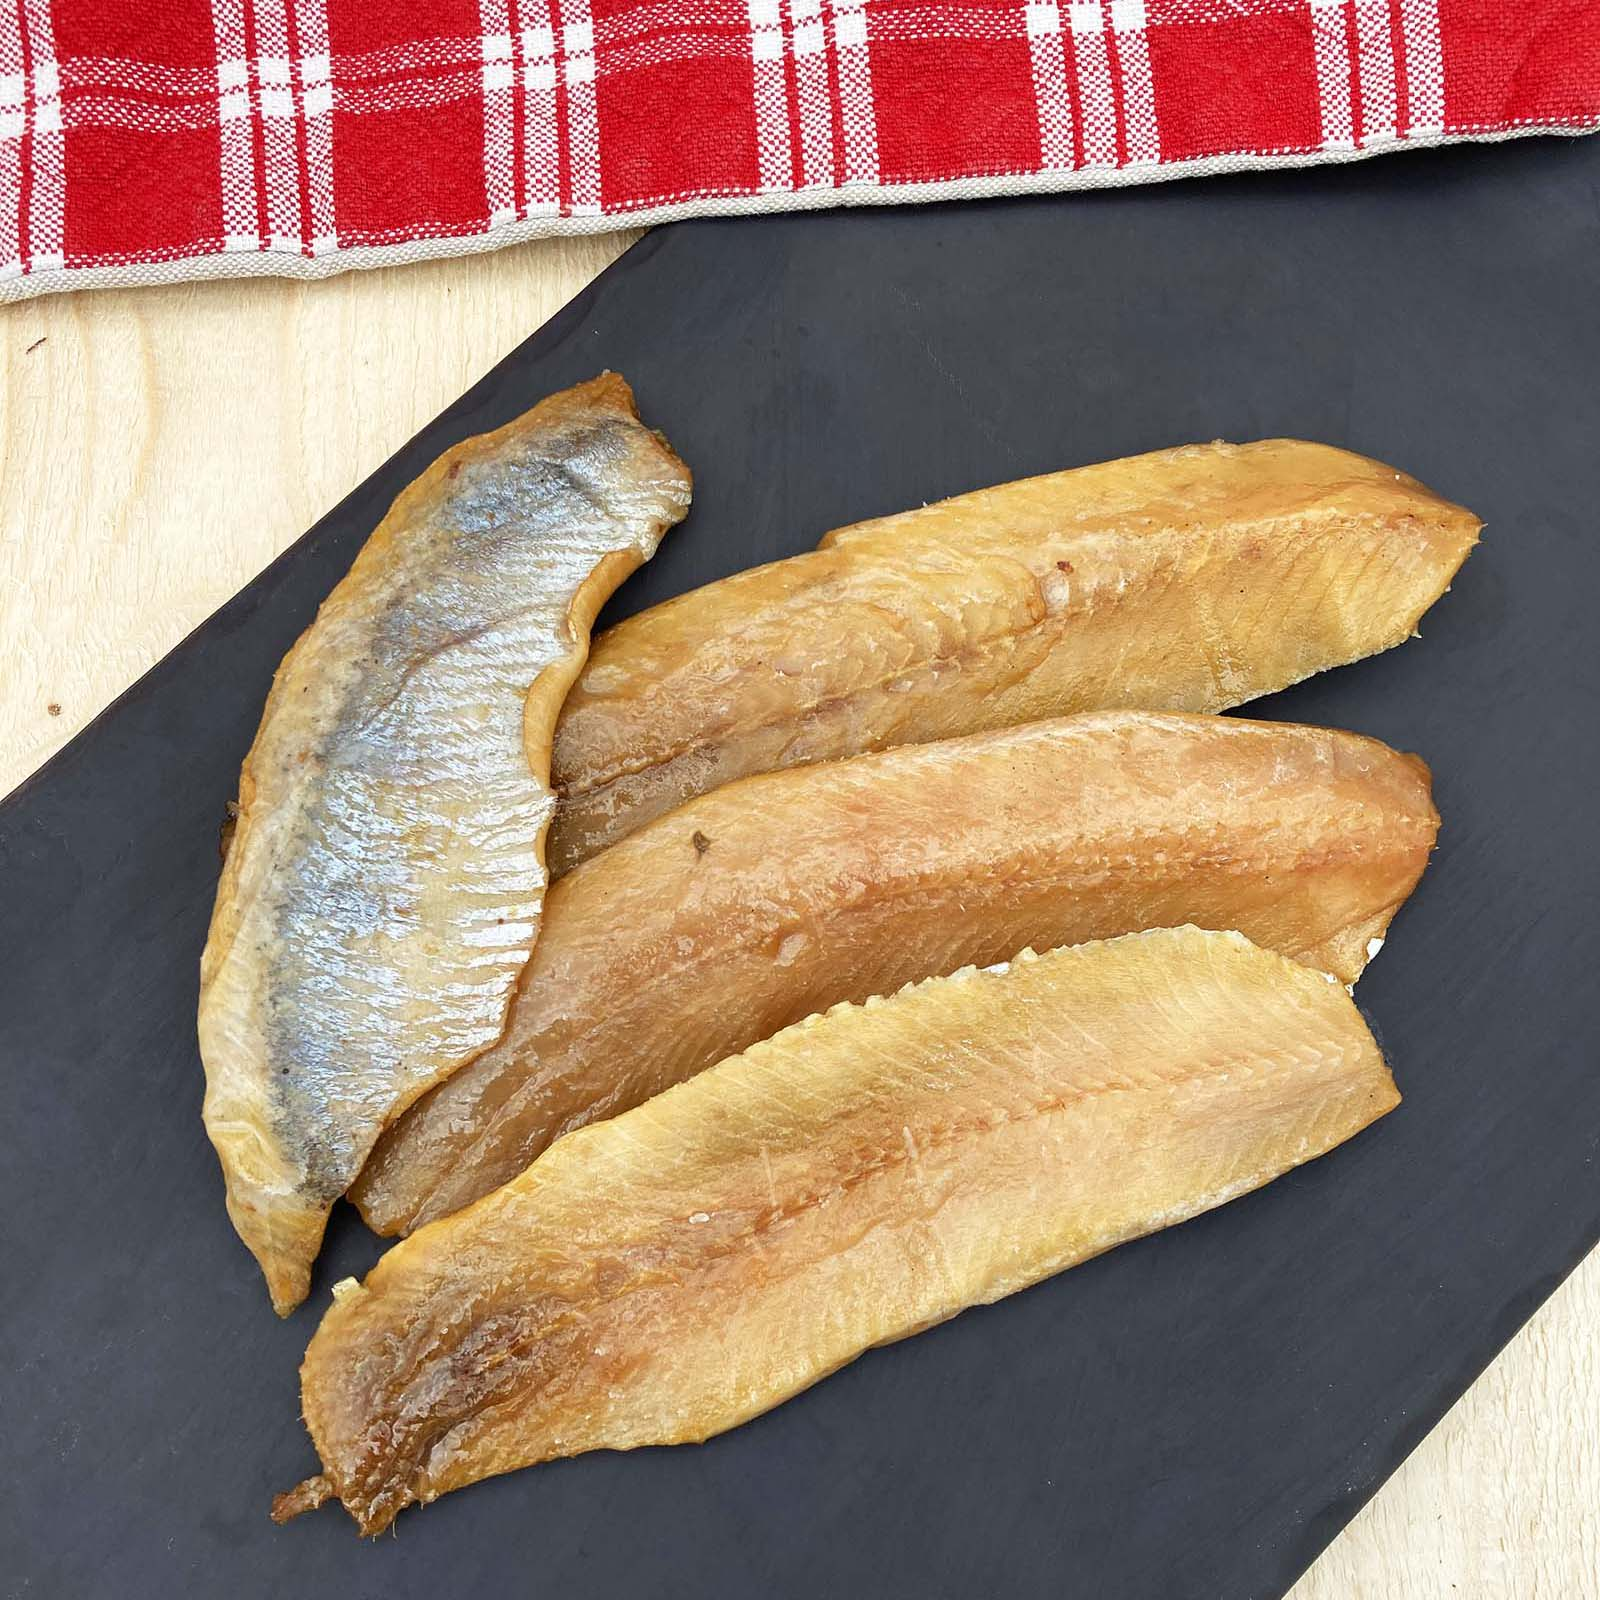 Filets de harengs fumés - 180g